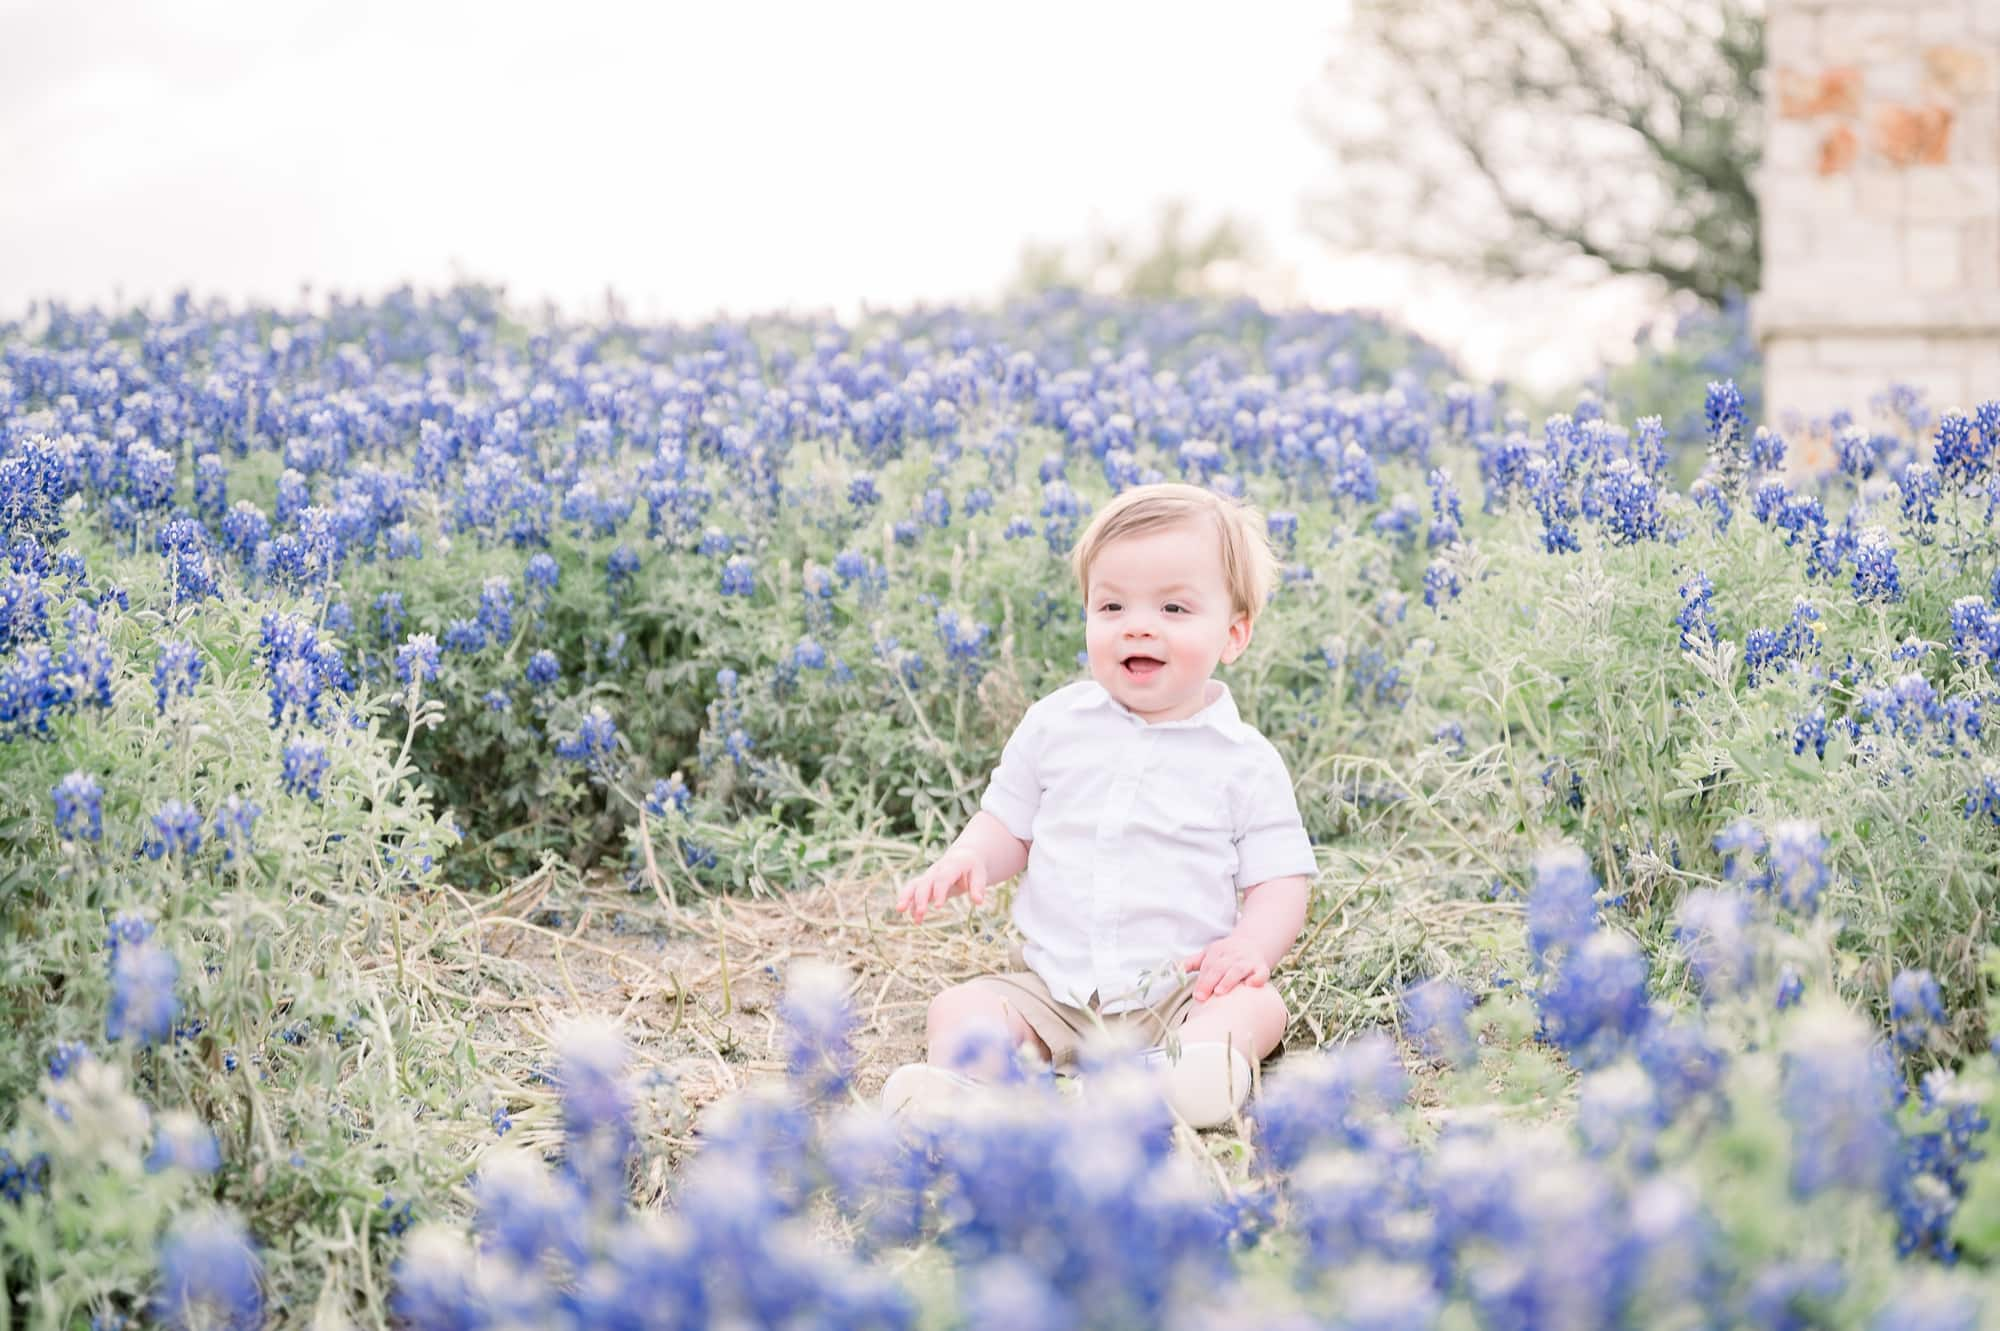 Baby boy smiling during family session in bluebonnet field. Photo by Aimee Hamilton Photography.